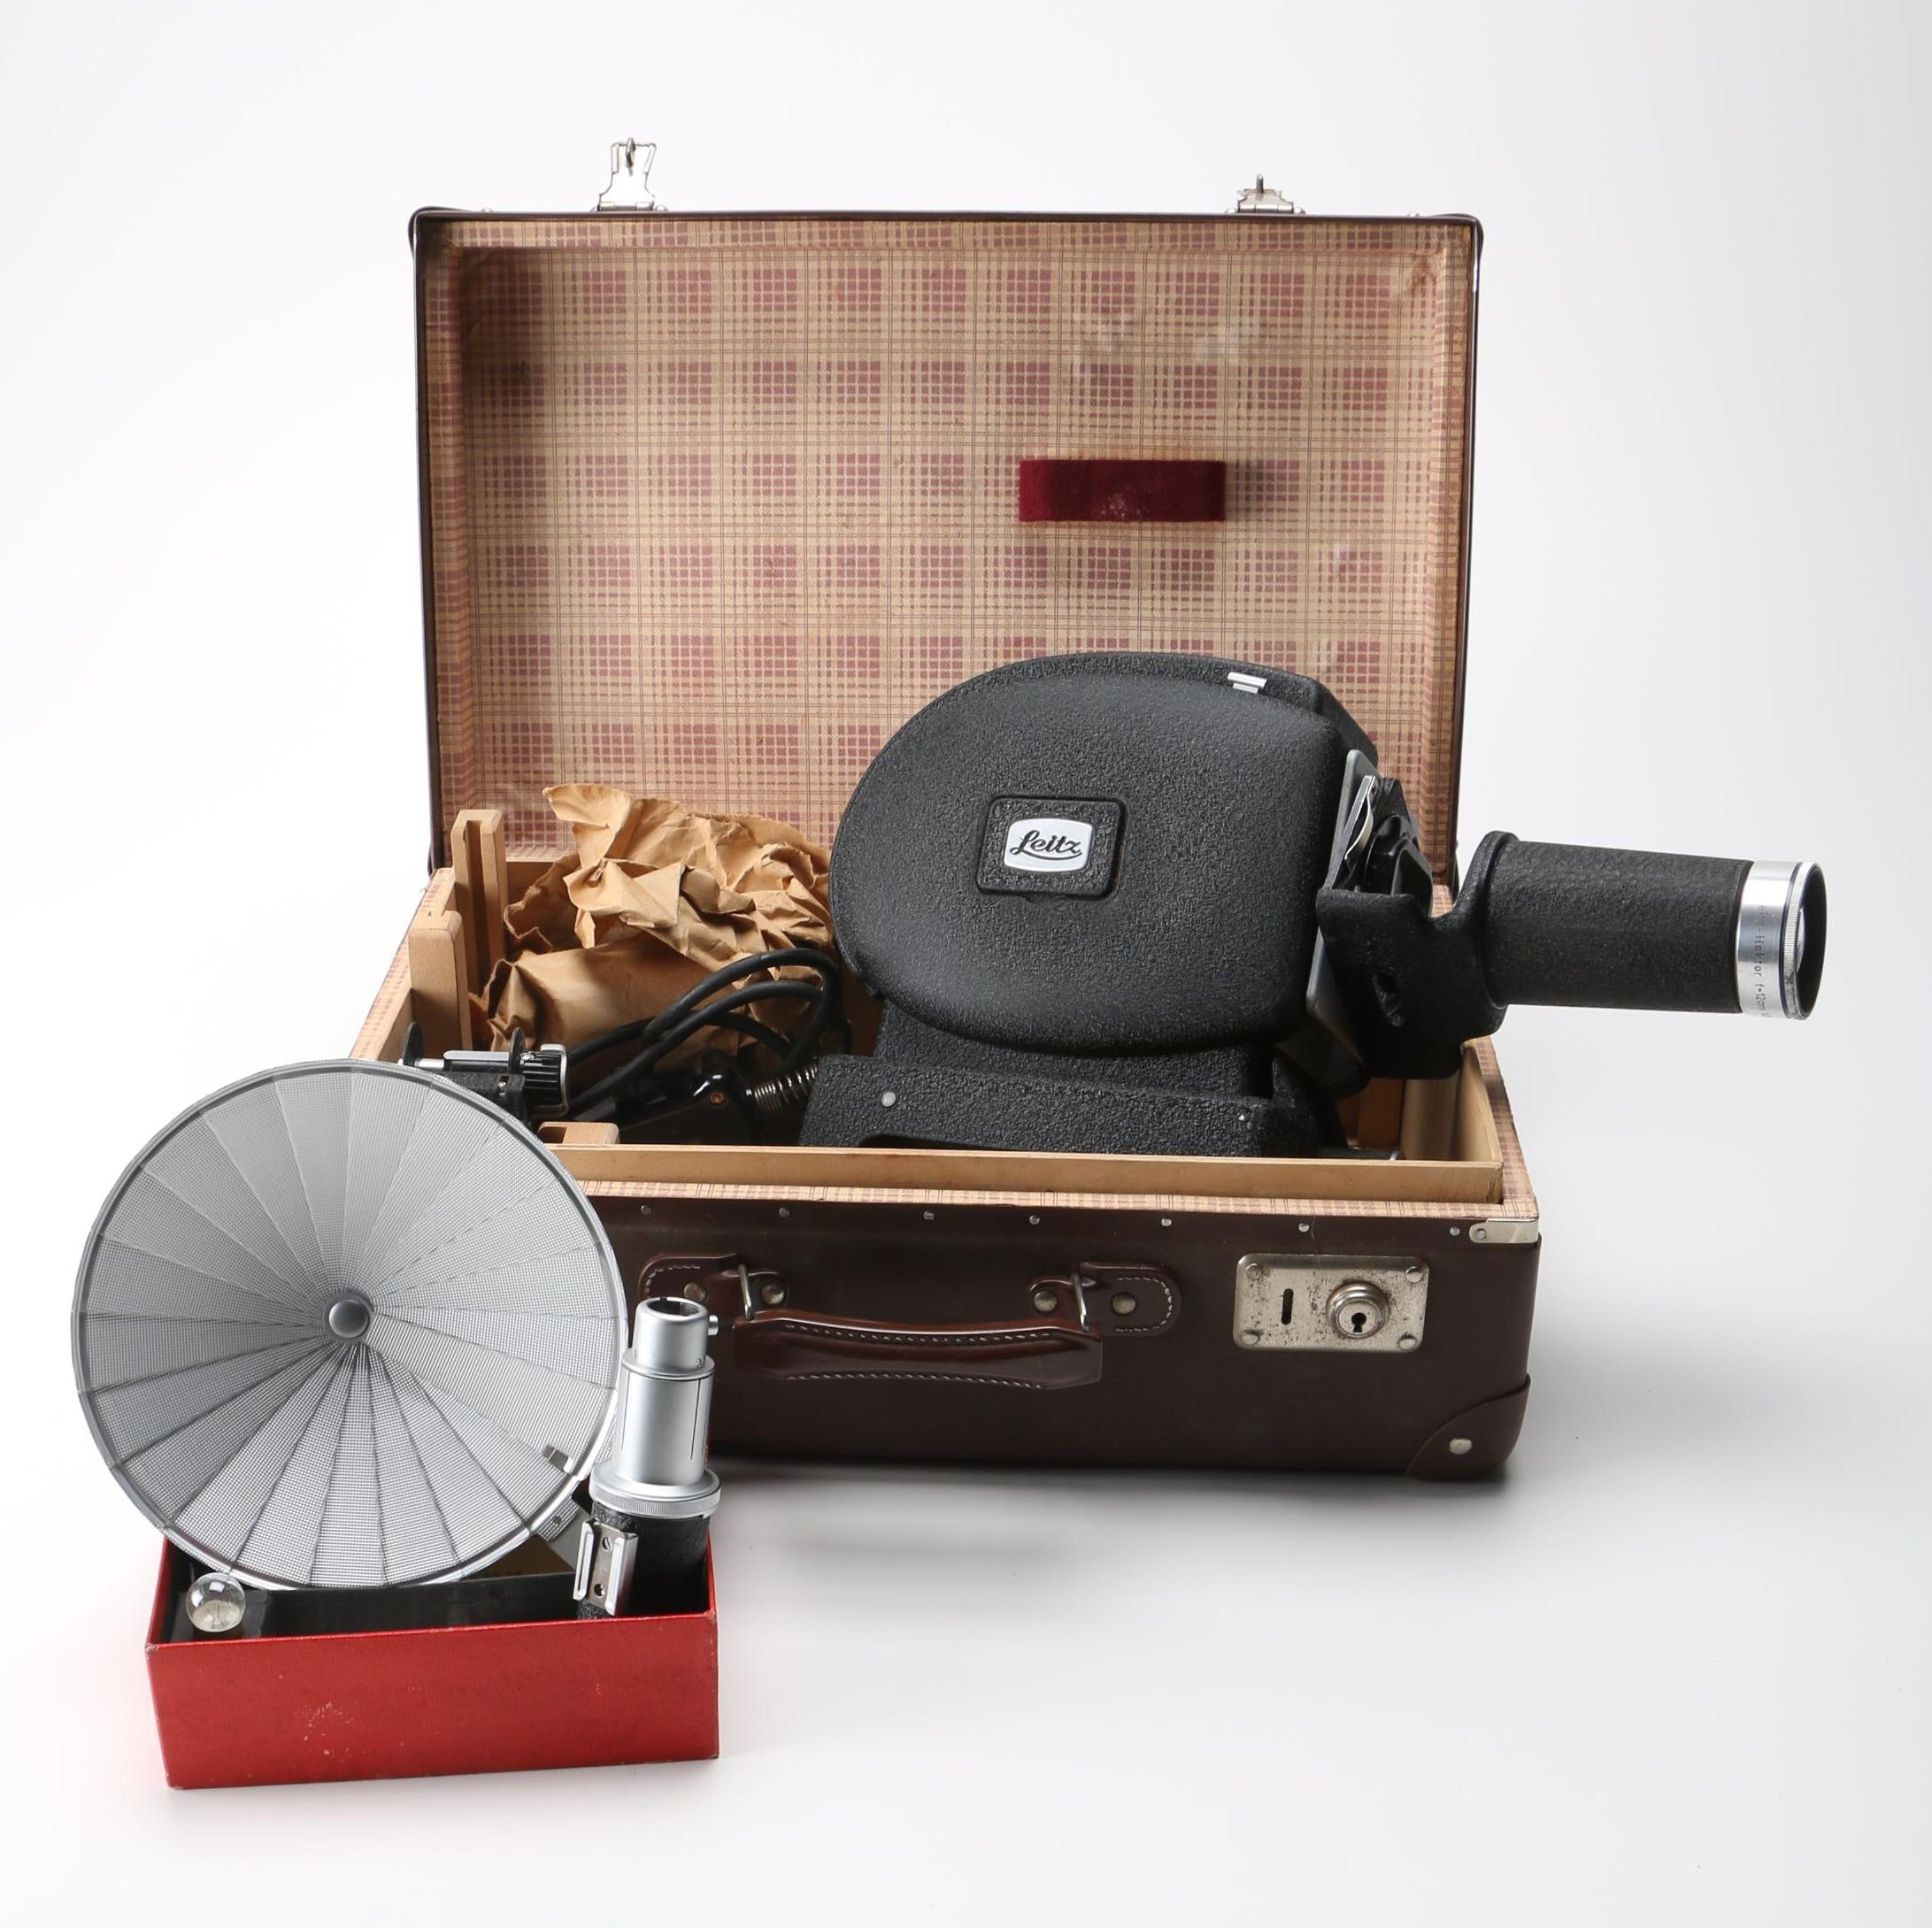 Leitz-Hektor Slide Projector and Case